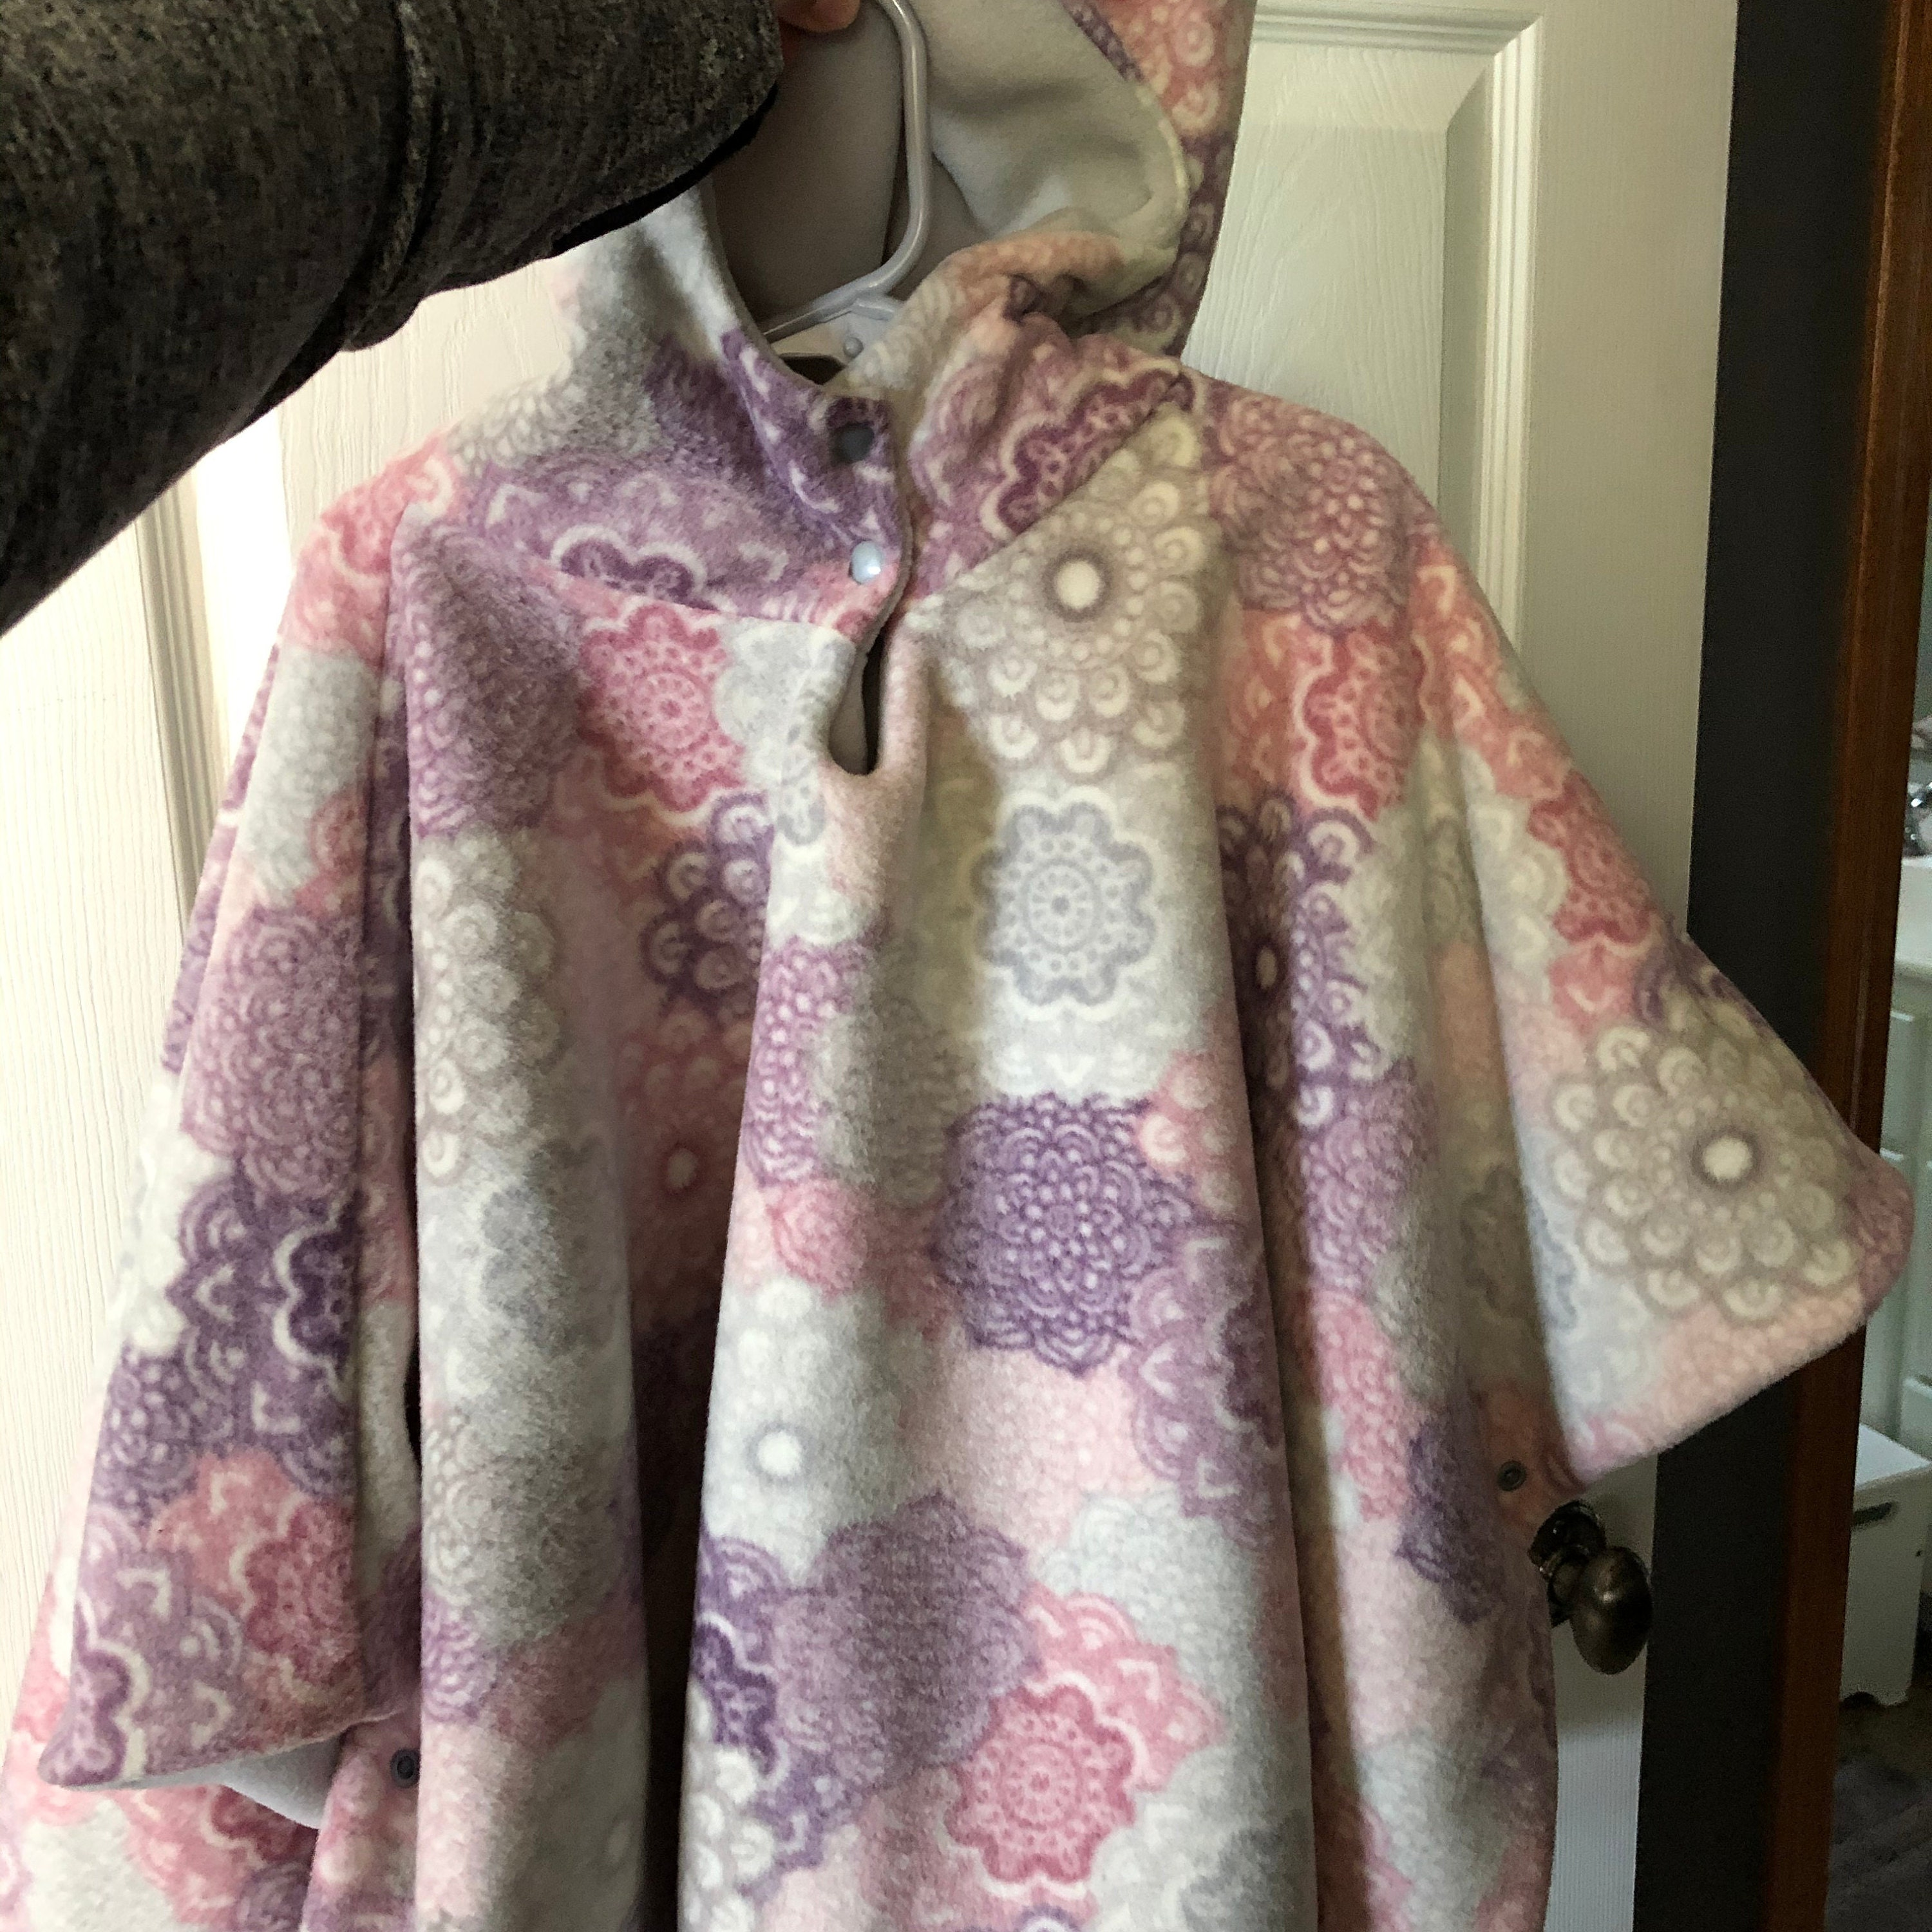 lauradirkes added a photo of their purchase